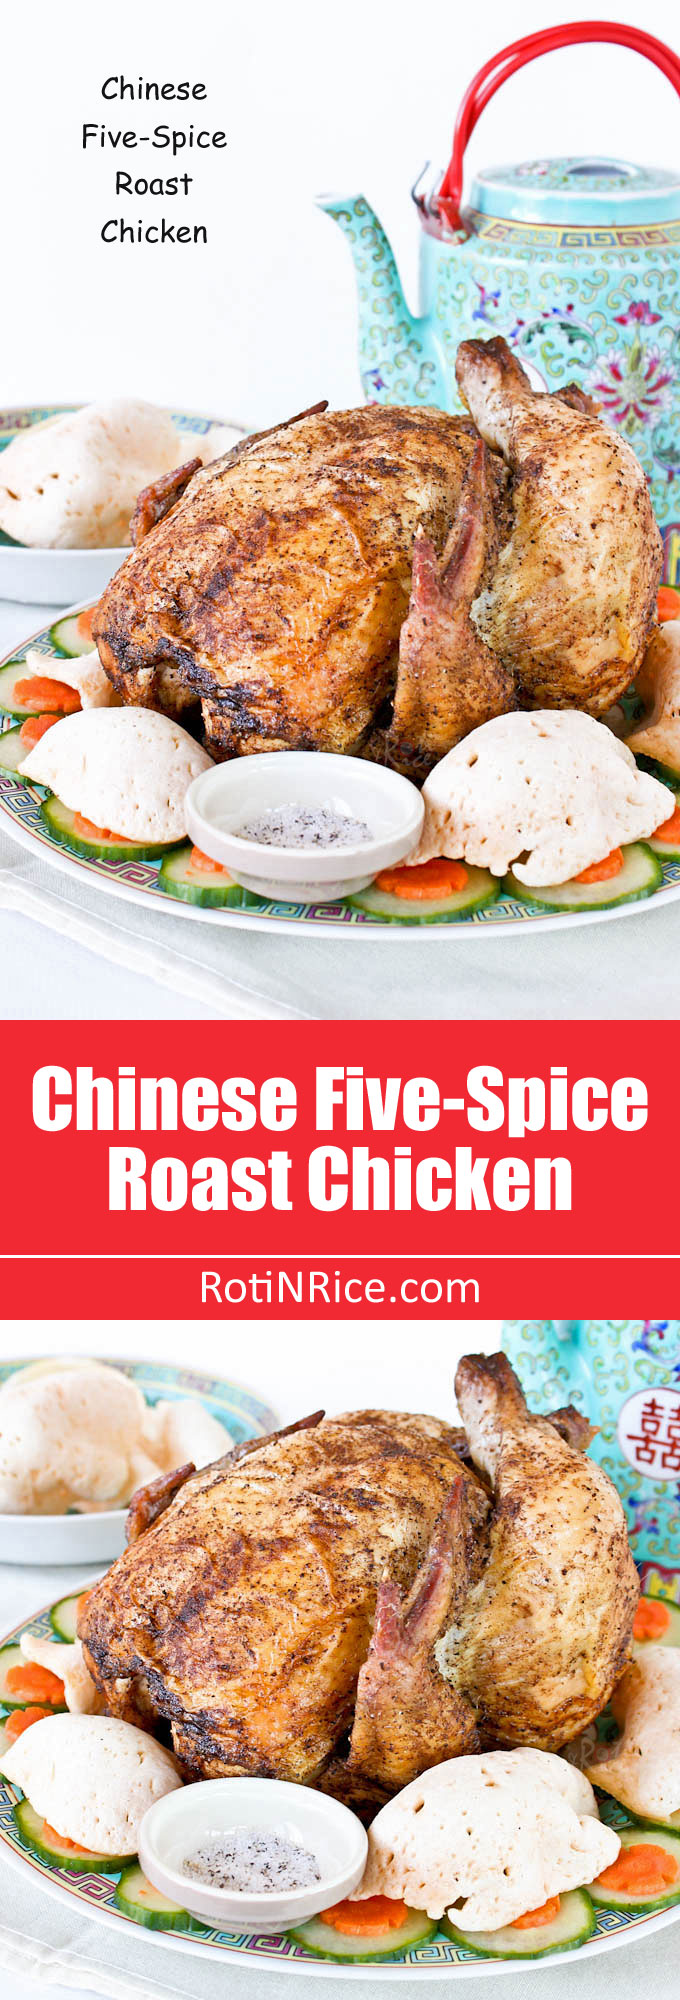 Chinese Steamed Chicken Recipe  China Sichuan Food